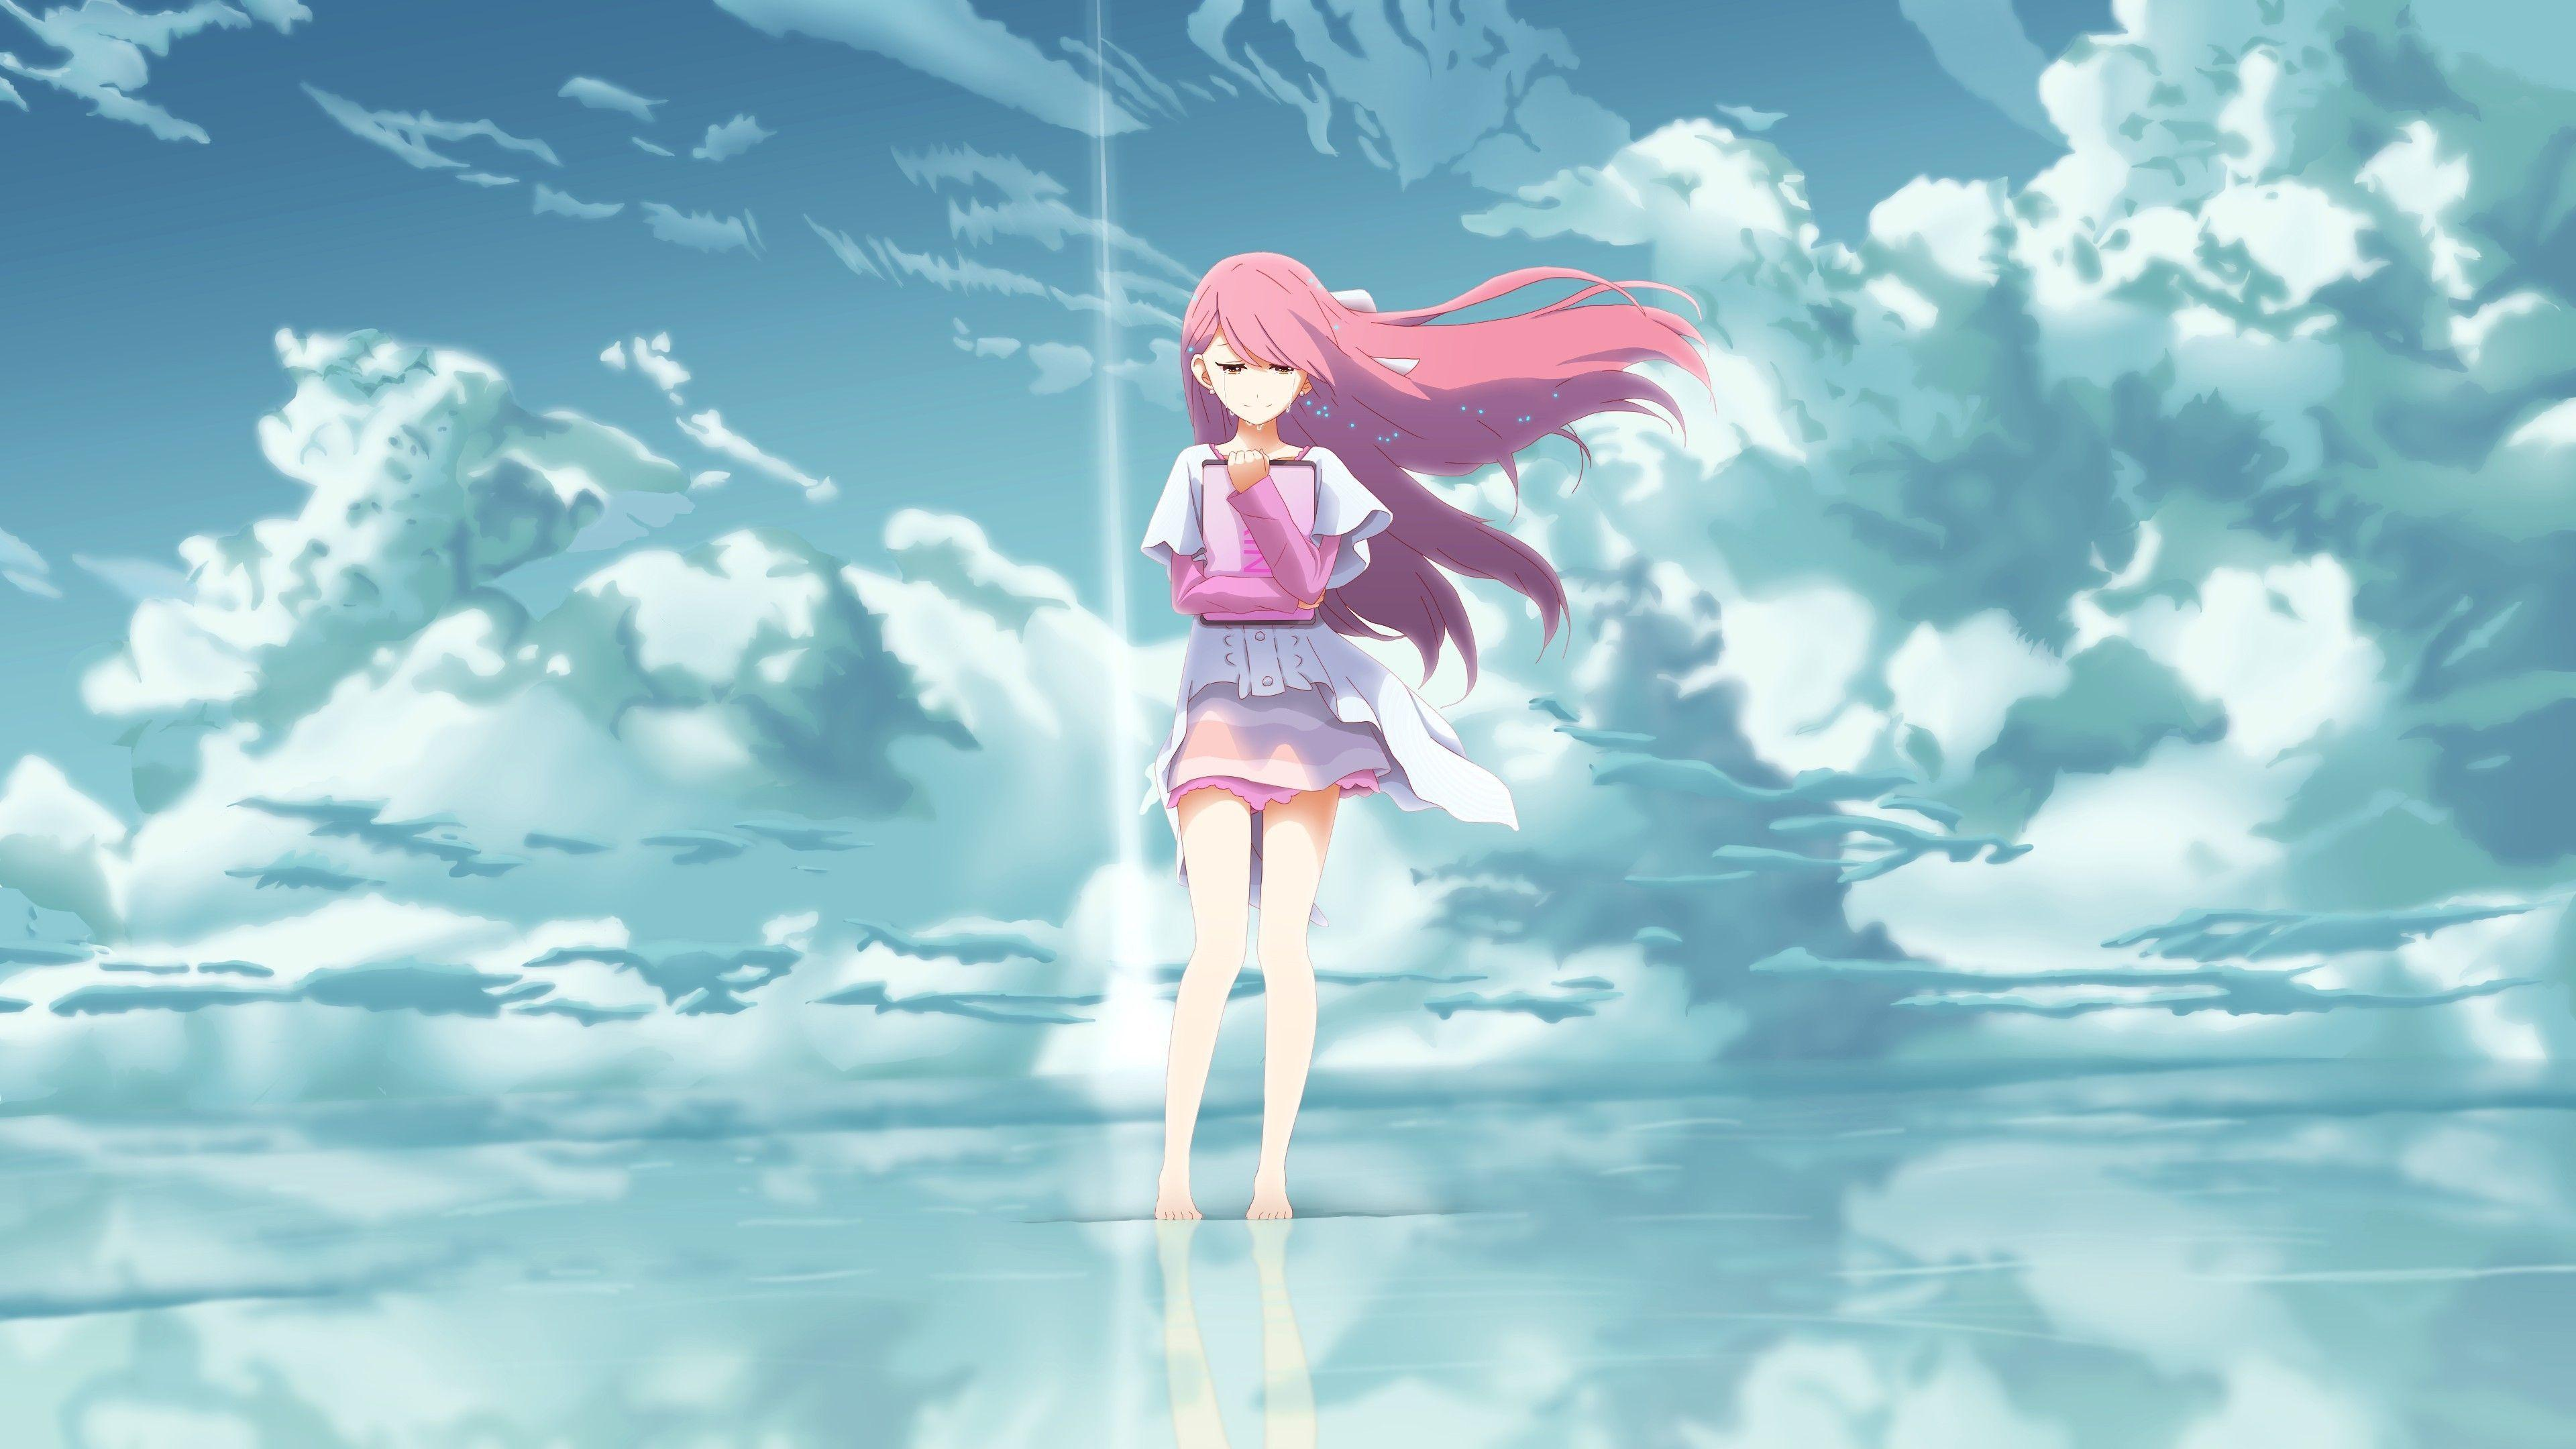 Check out this fantastic collection of aesthetic anime desktop wallpapers, with 40 aesthetic anime desktop background images for your desktop,. Aesthetic Anime Desktop Wallpapers - Wallpaper Cave